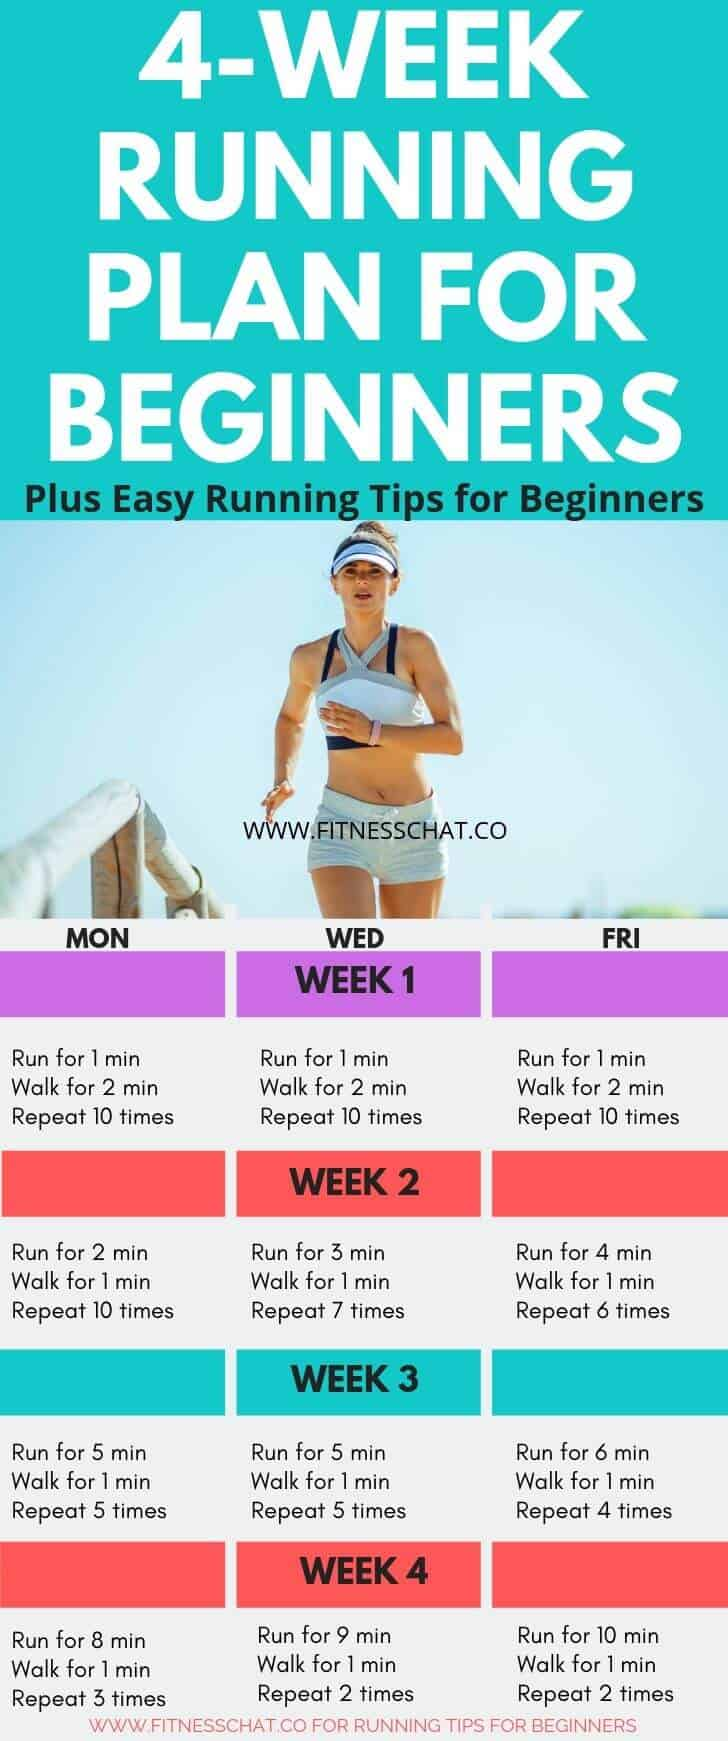 4 week running plan for beginners plus 8 easy running tips for beginners to become runners